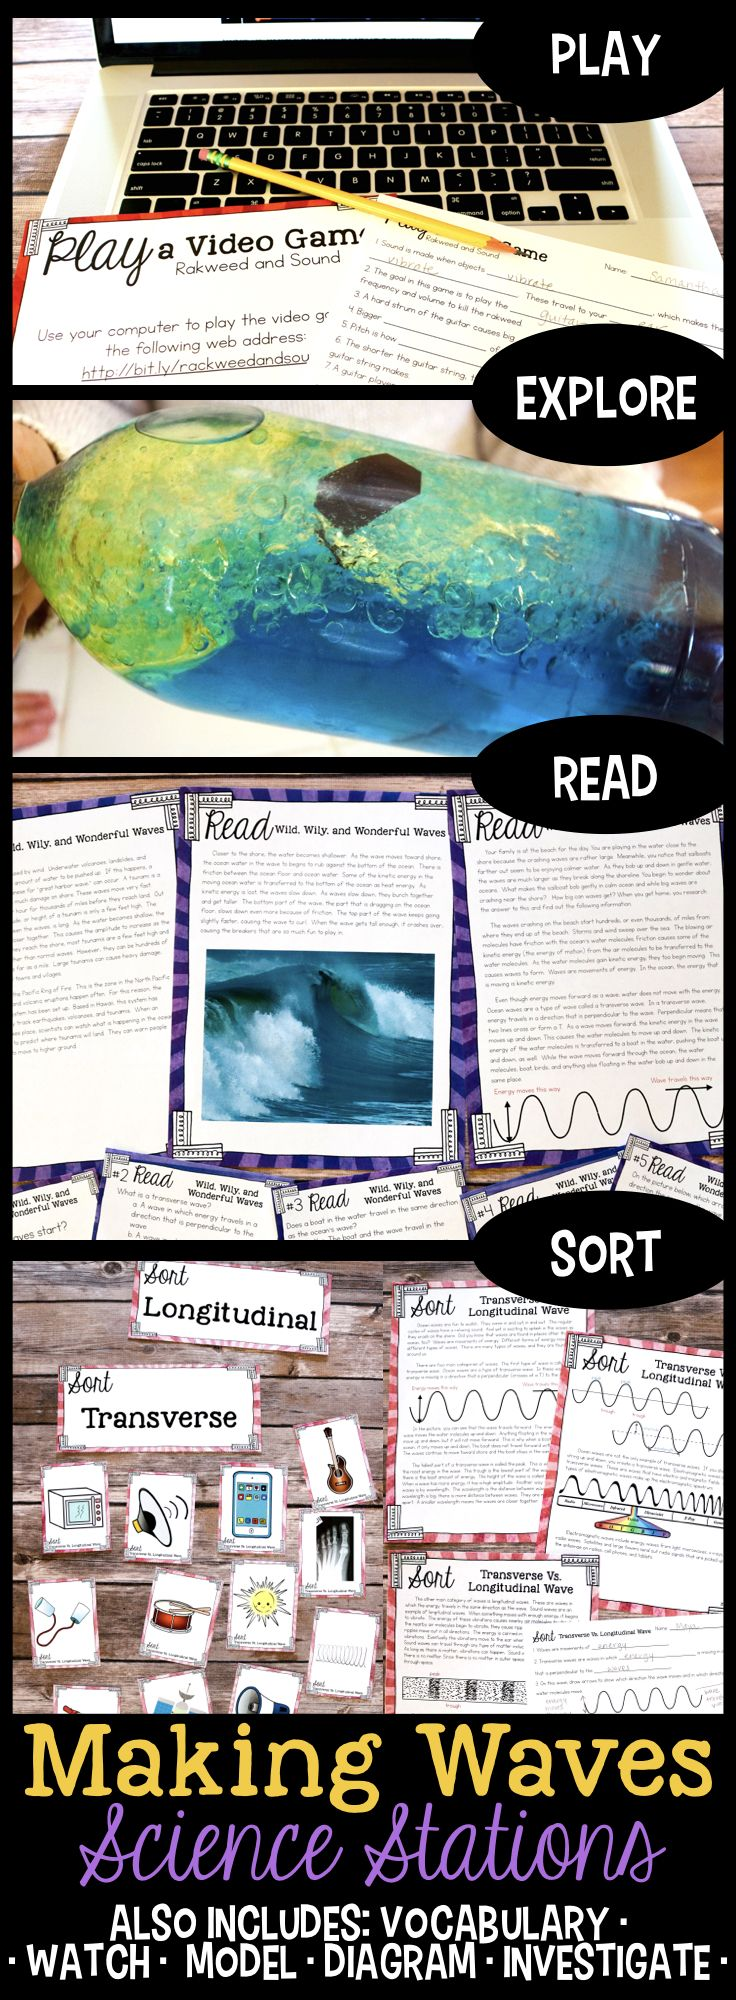 Making Waves - Wave Properties science stations for fourth grade each students about what happens when sound enters the ear.